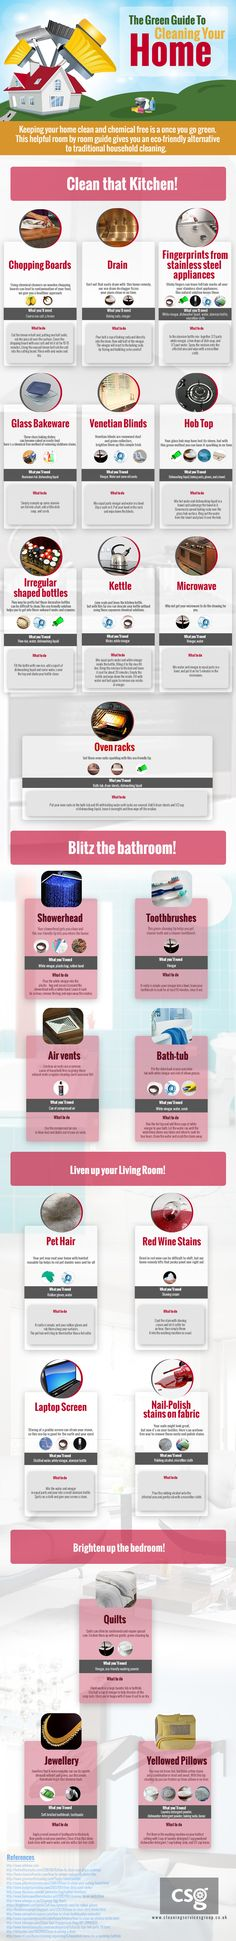 Check out this infographic for a comprehensive guide on natural ways you can clean just about every spot in your home.